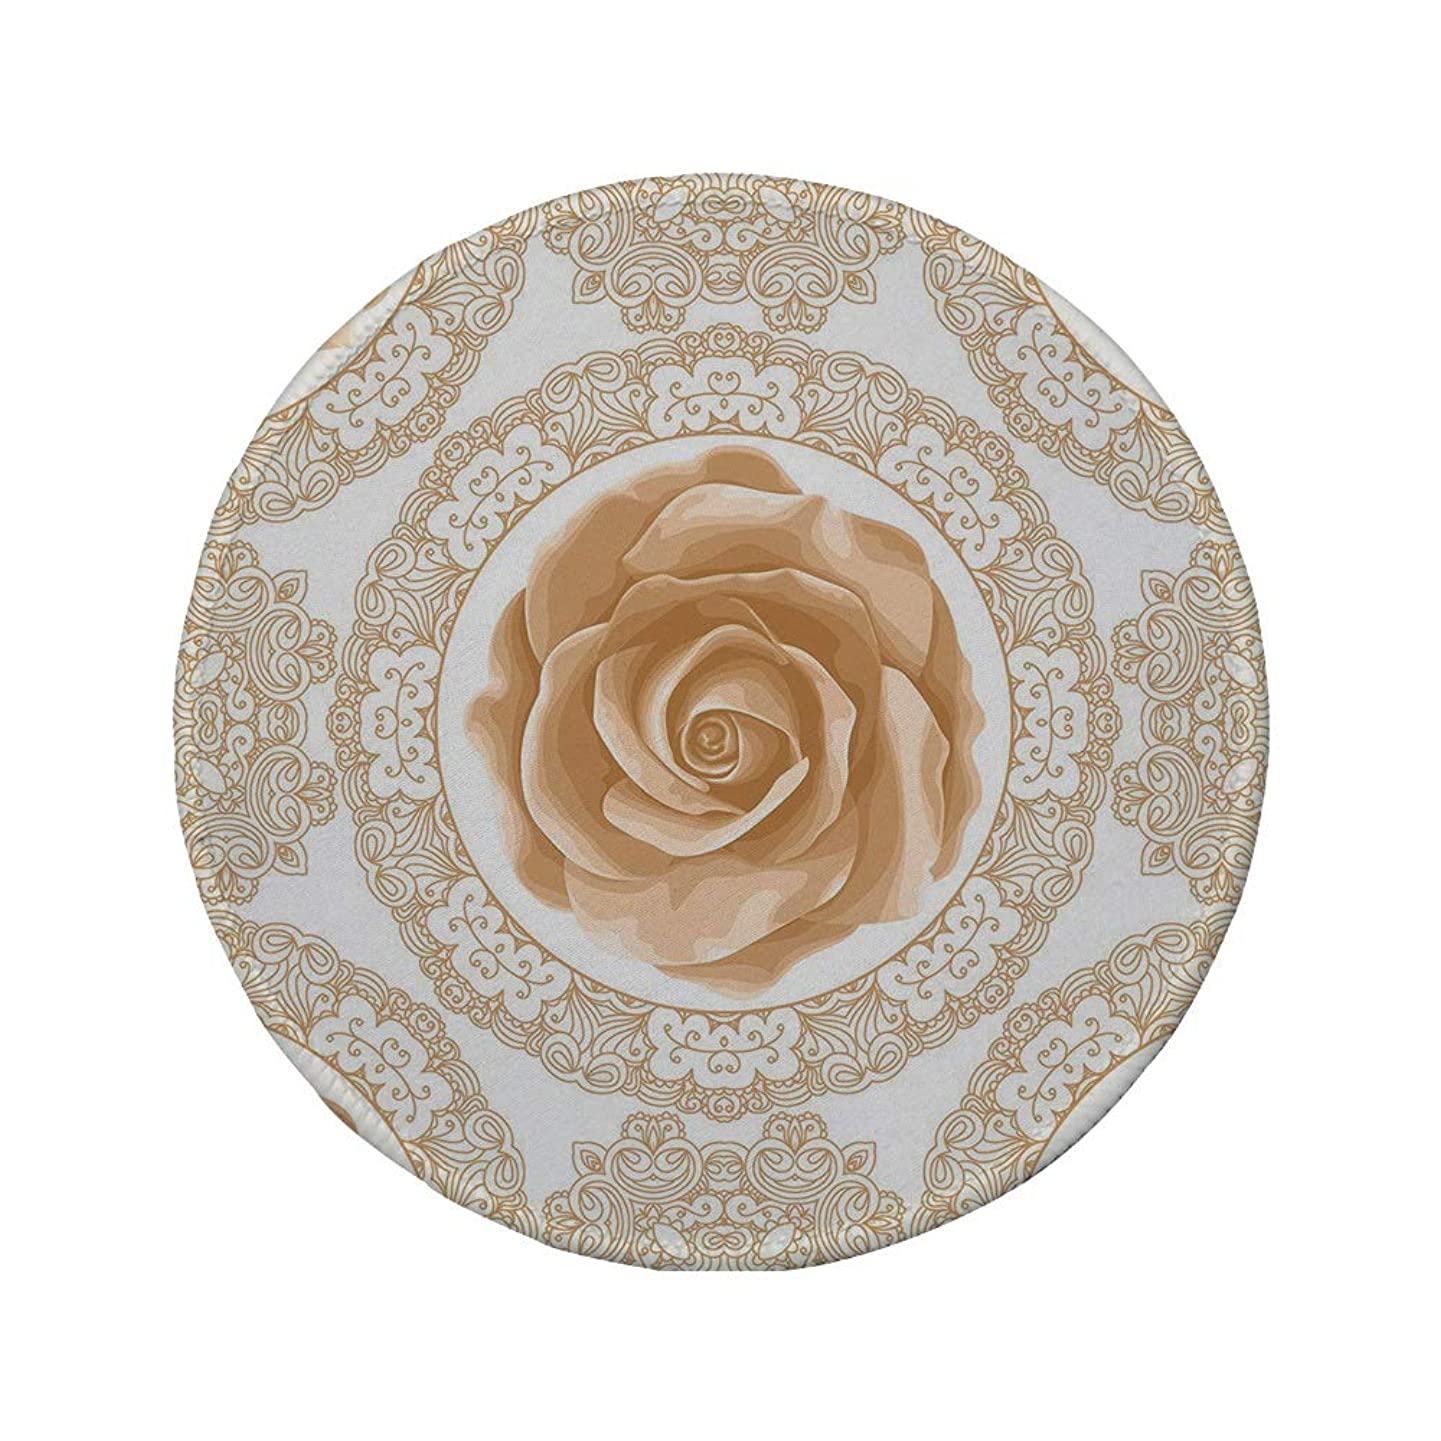 Non-Slip Rubber Round Mouse Pad,Floral,Rose Florets with Classic Golden Lace Authentic Feminine Retro Oriental Motif,Sand Brown White,7.87